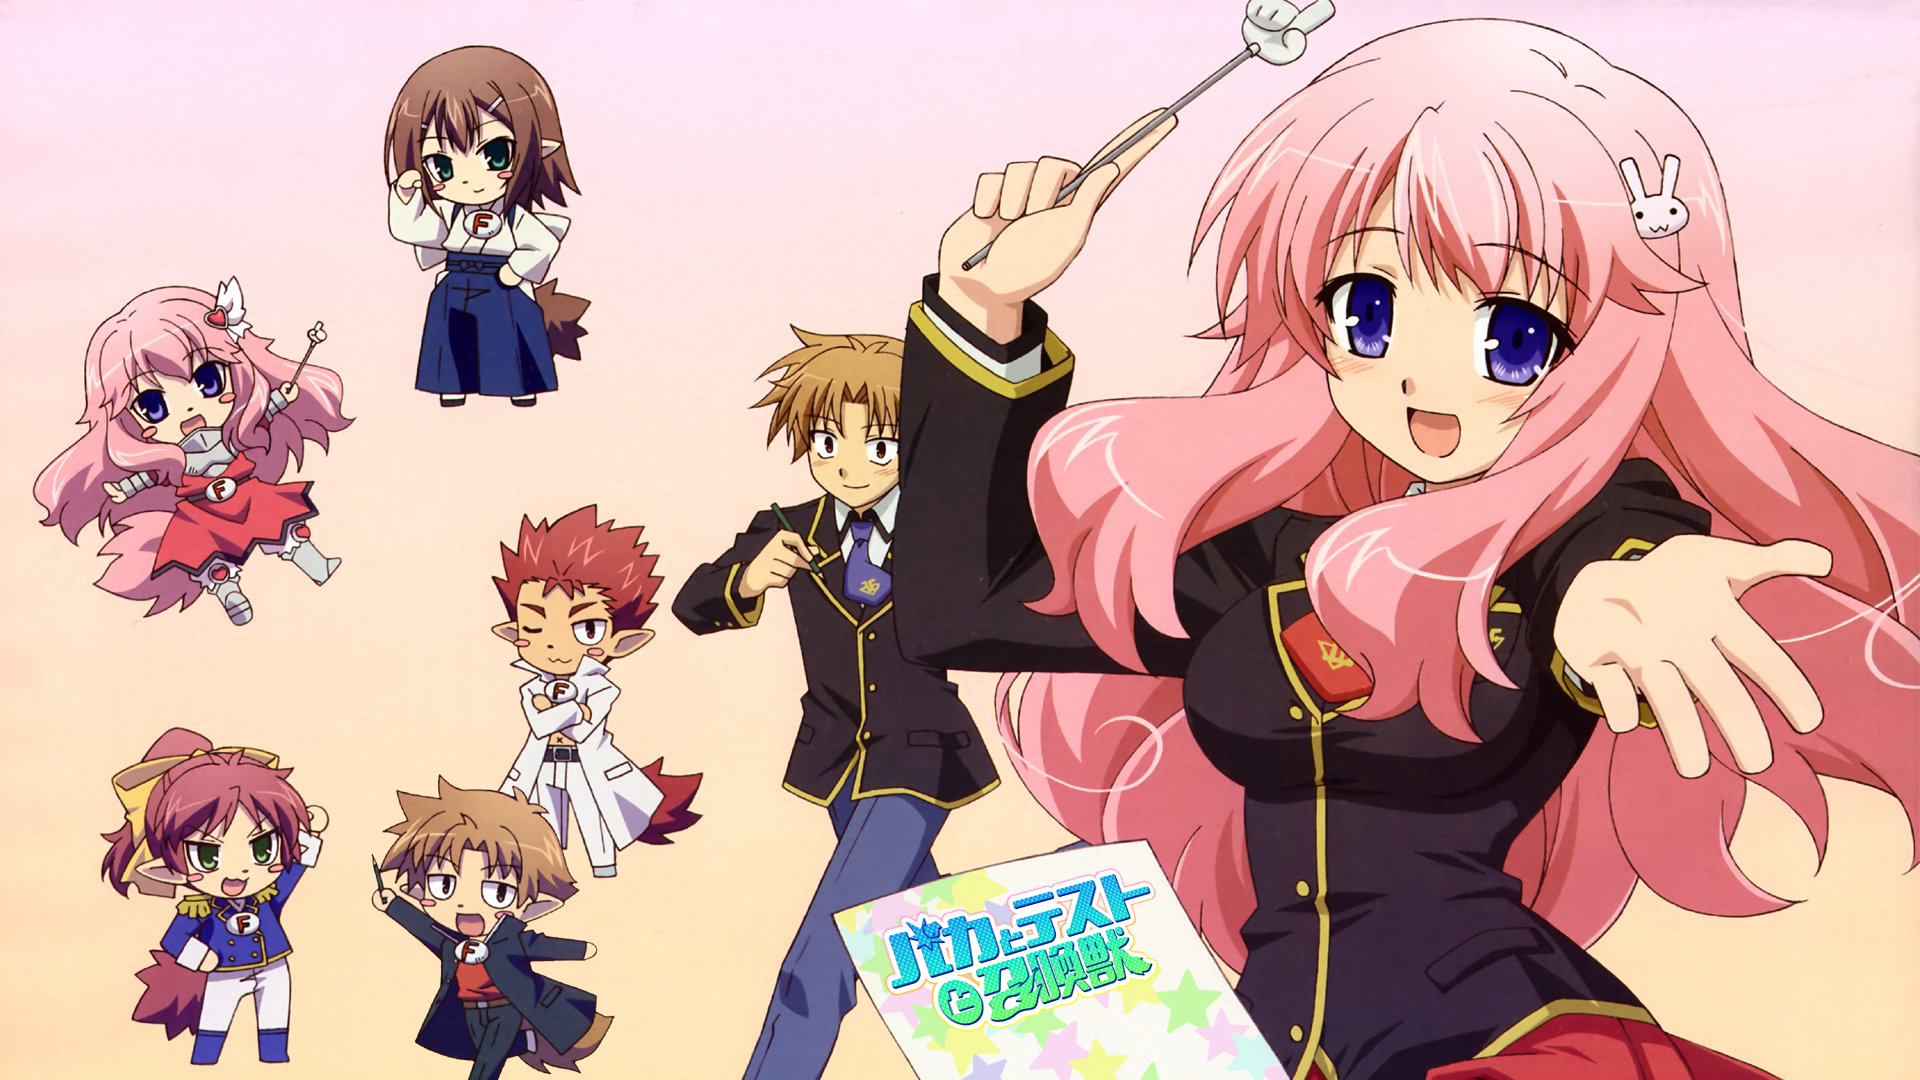 Download 1080p Baka And Test desktop background ID:183553 for free